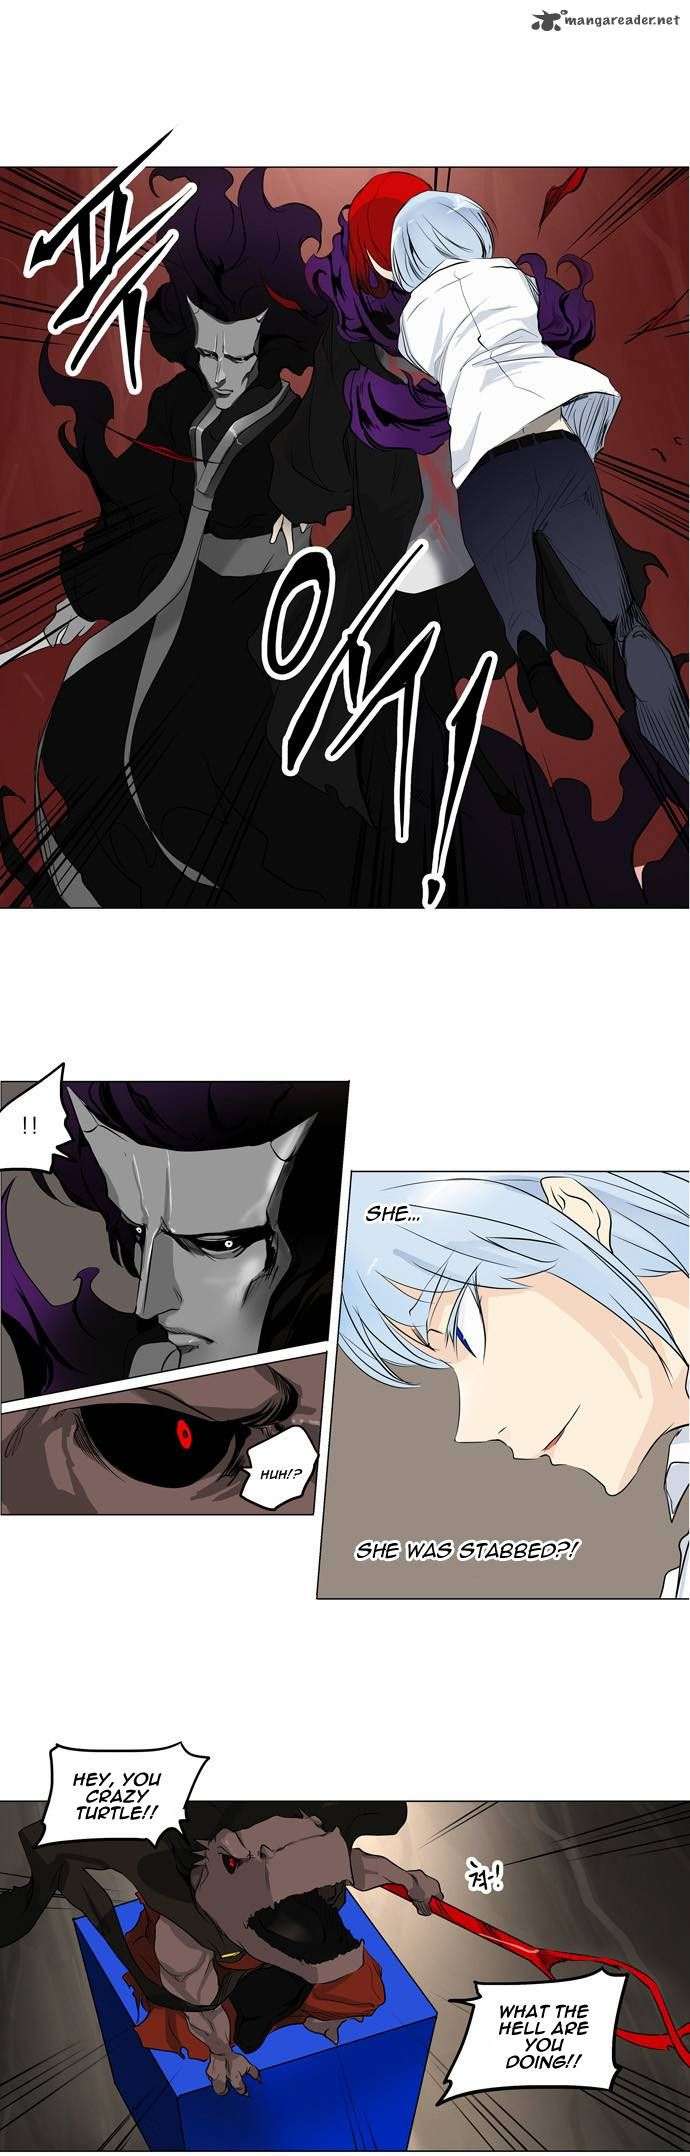 Tower of God 183 Page 1